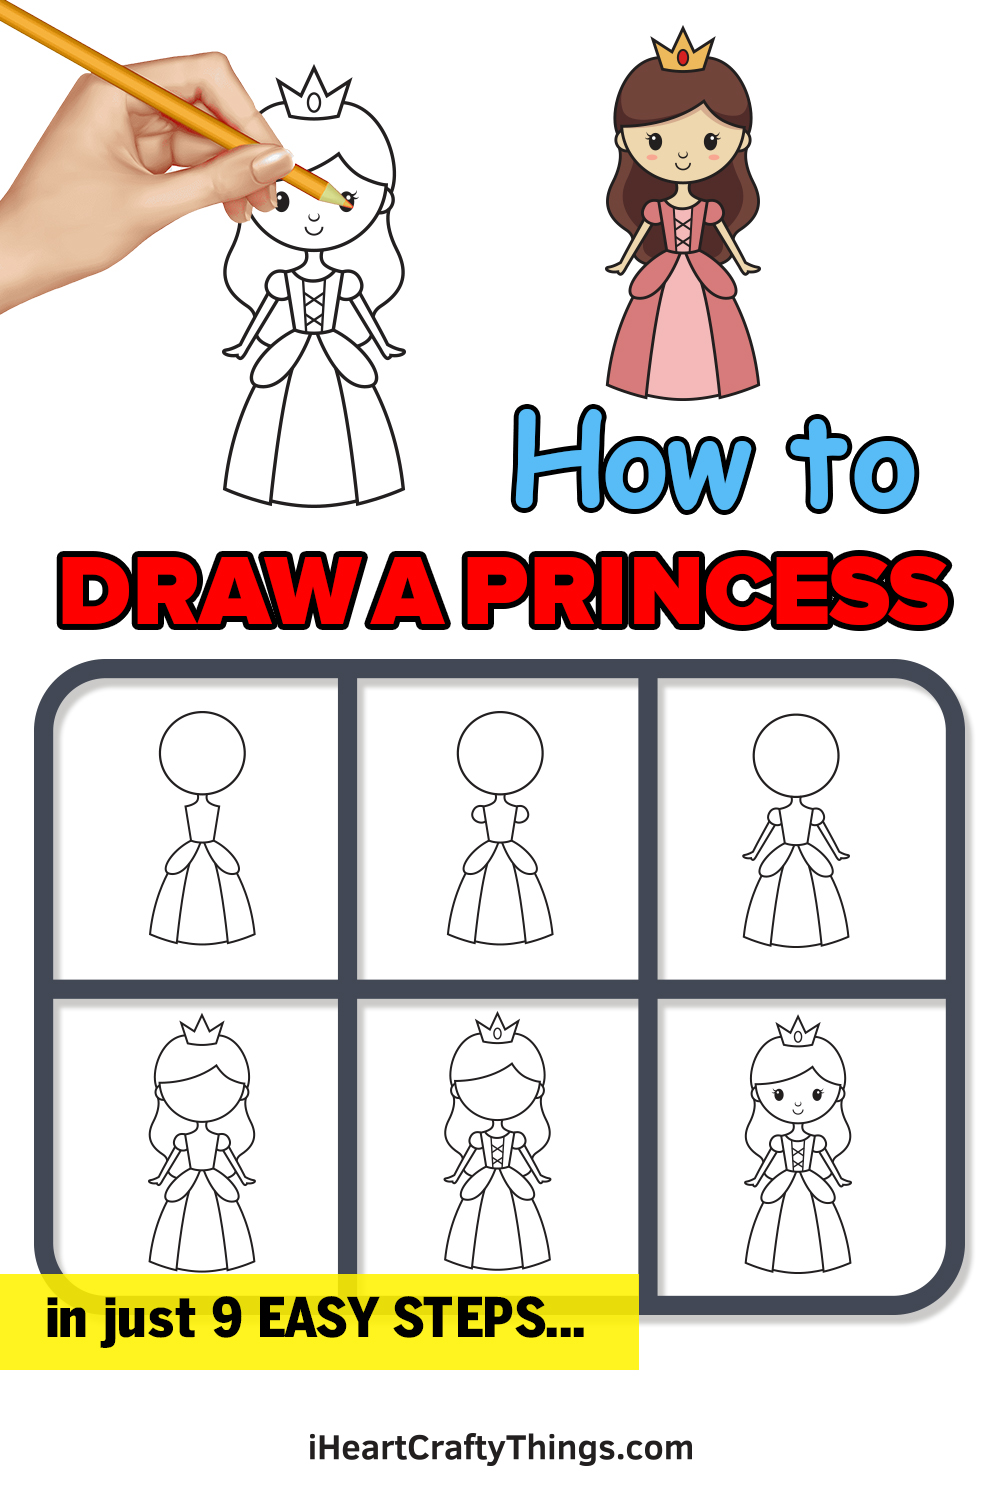 How to Draw Princess in 9 Easy Steps